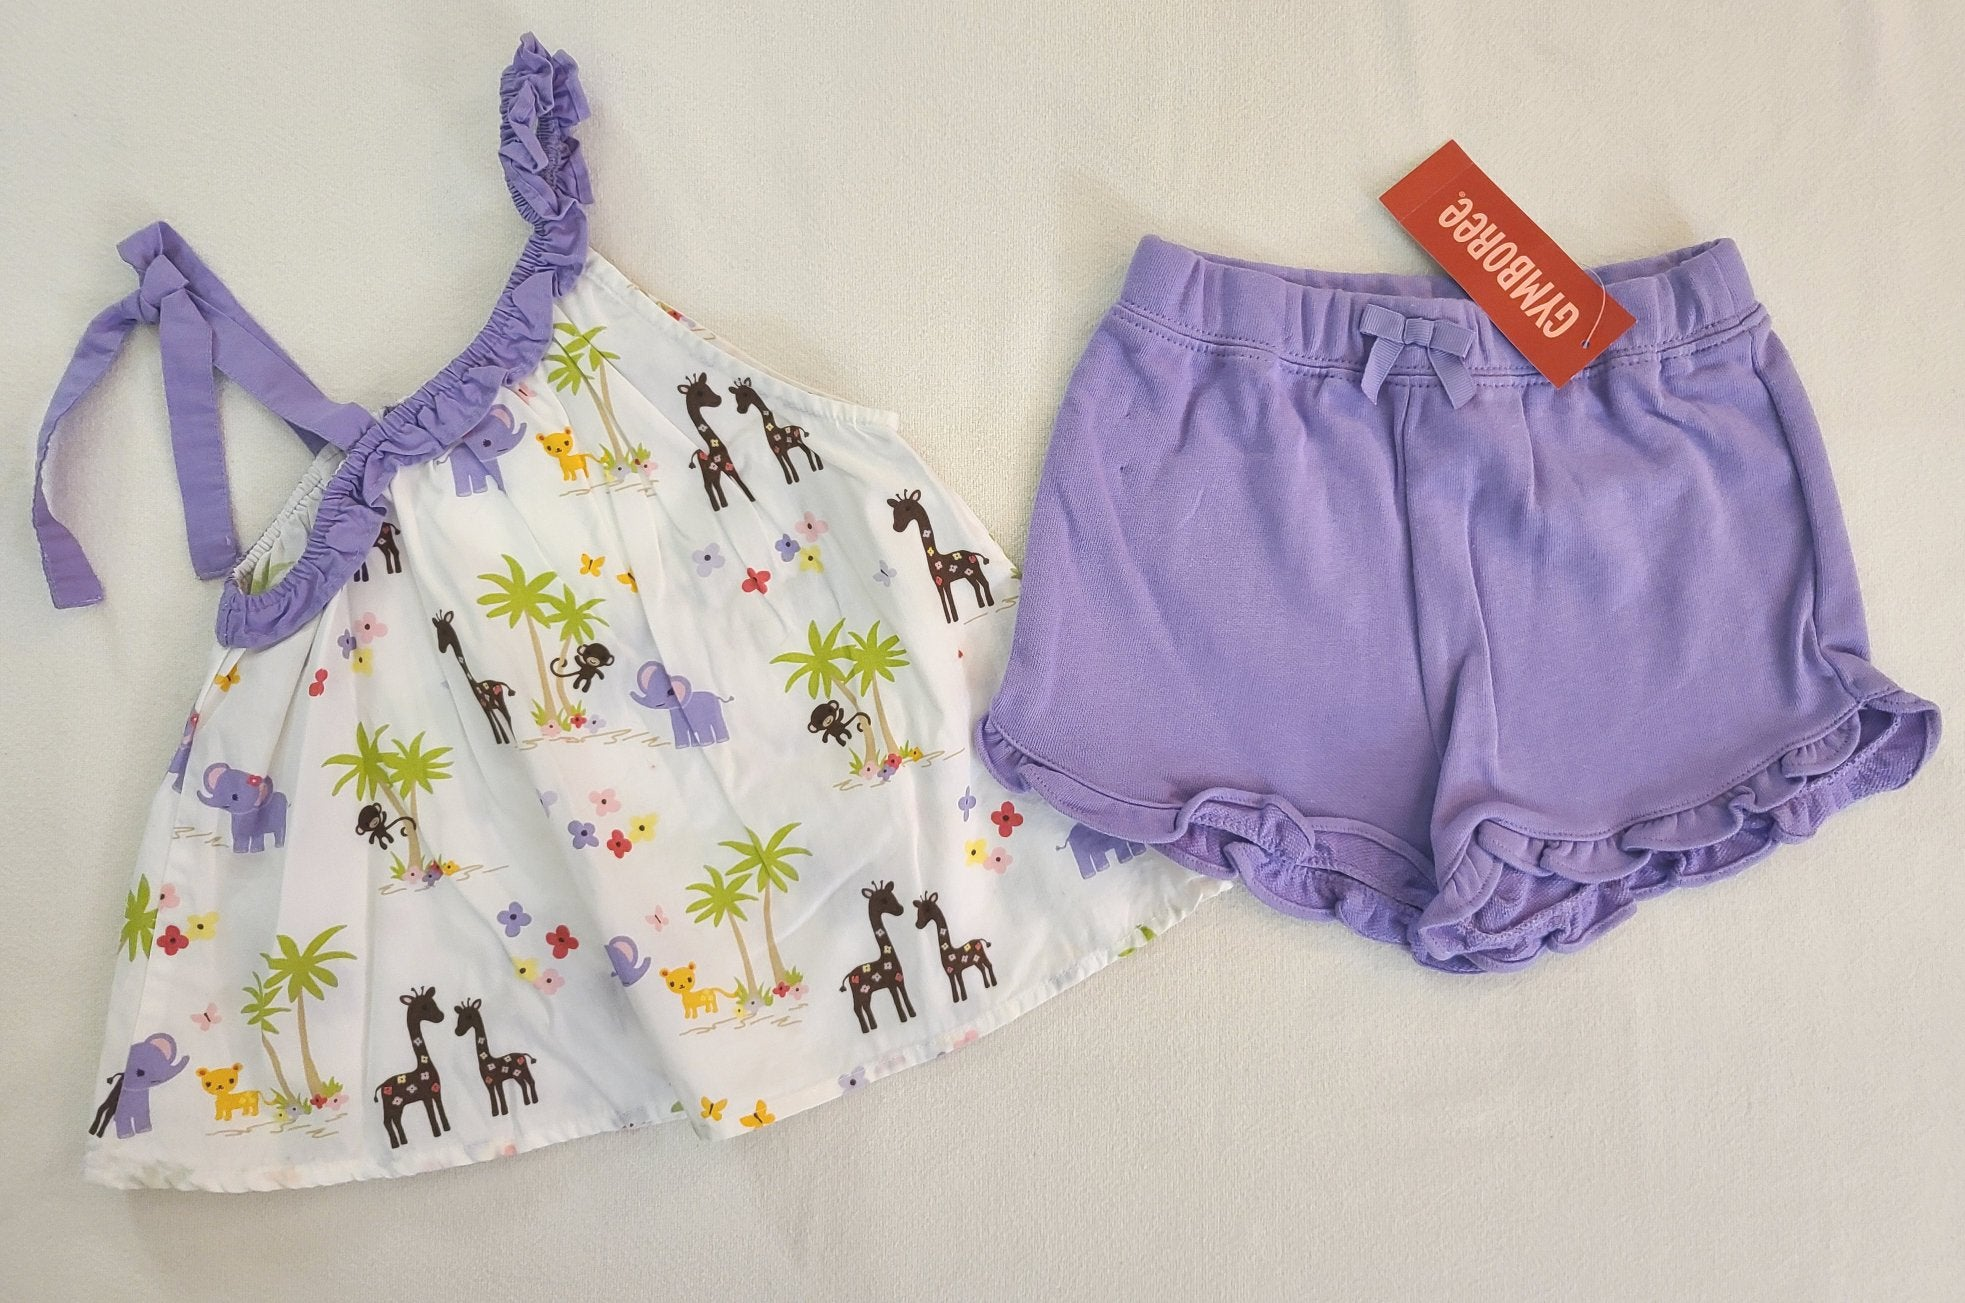 GYMBOREE 2 pc set - tank top & *NWT* shorts; Girls size 3T